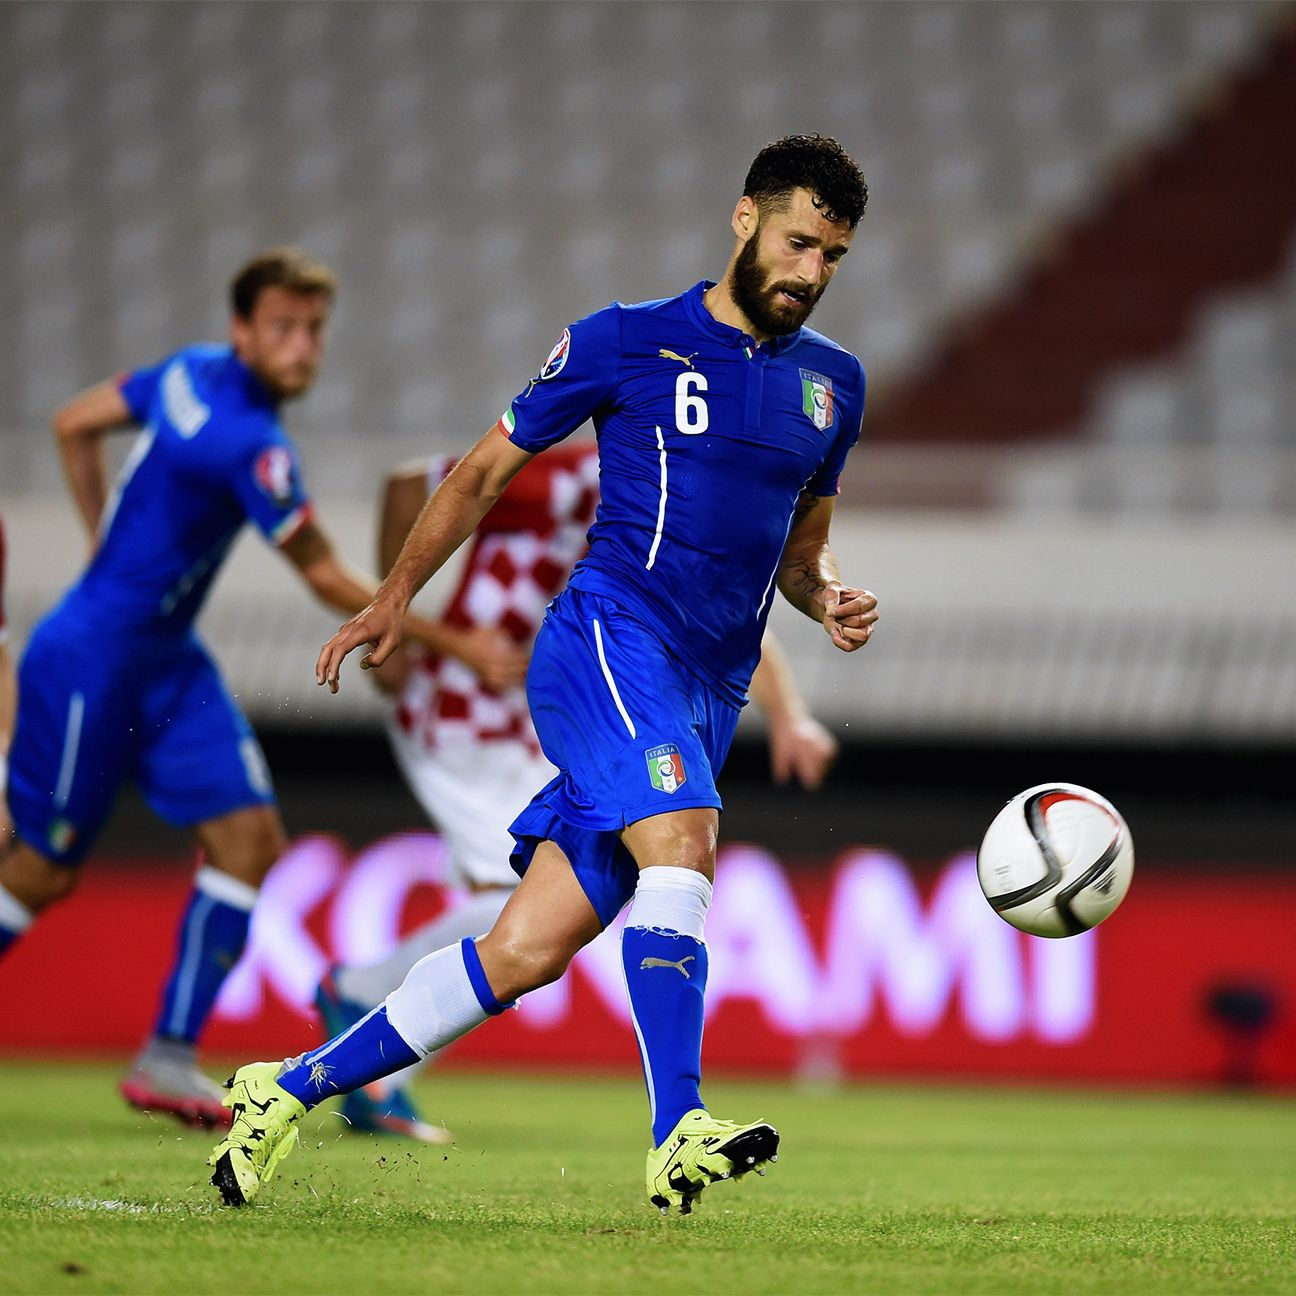 Antonio Candreva's well-taken penalty 'a la Panenka' earned Italy a point in Croatia.